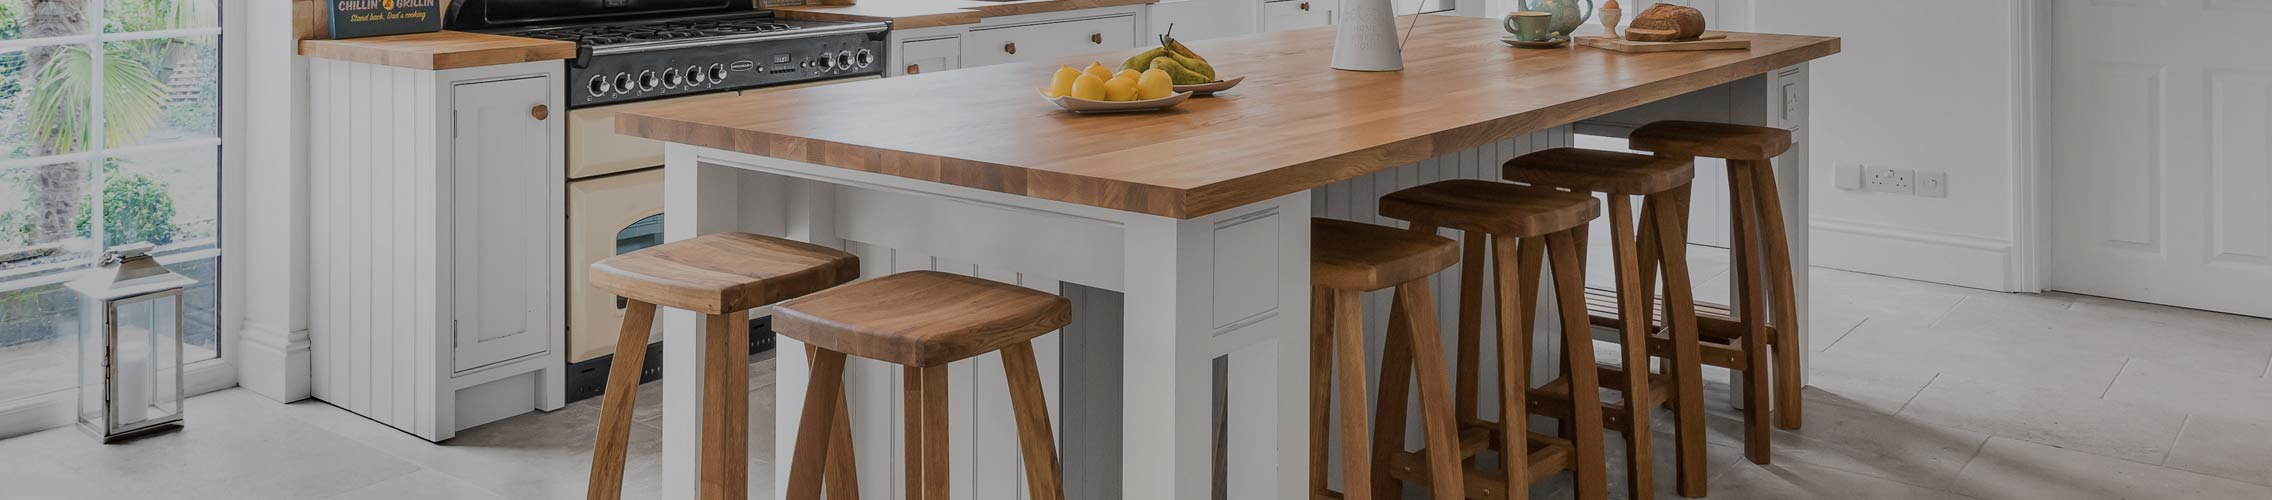 Wooden Kitchen Stools